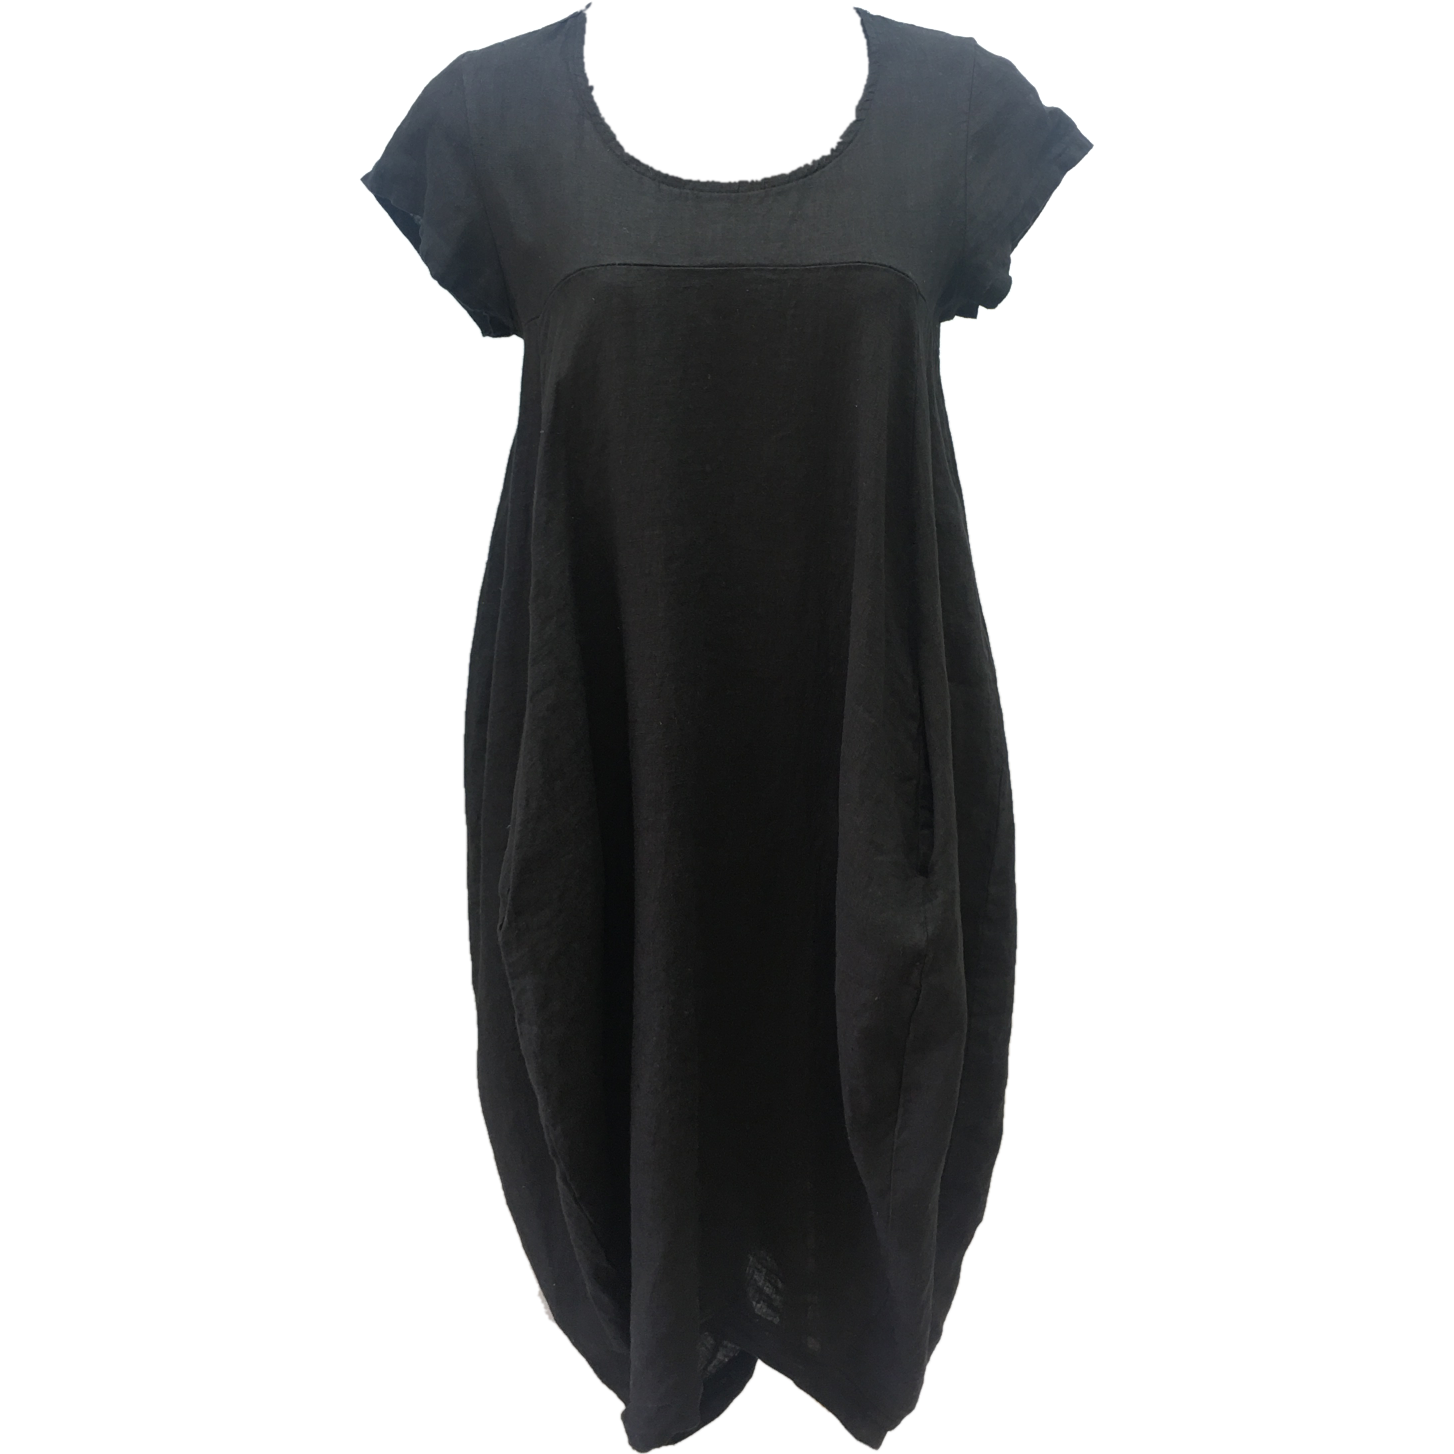 Talia Benson 100% Linen Short sleeved Dress in Black